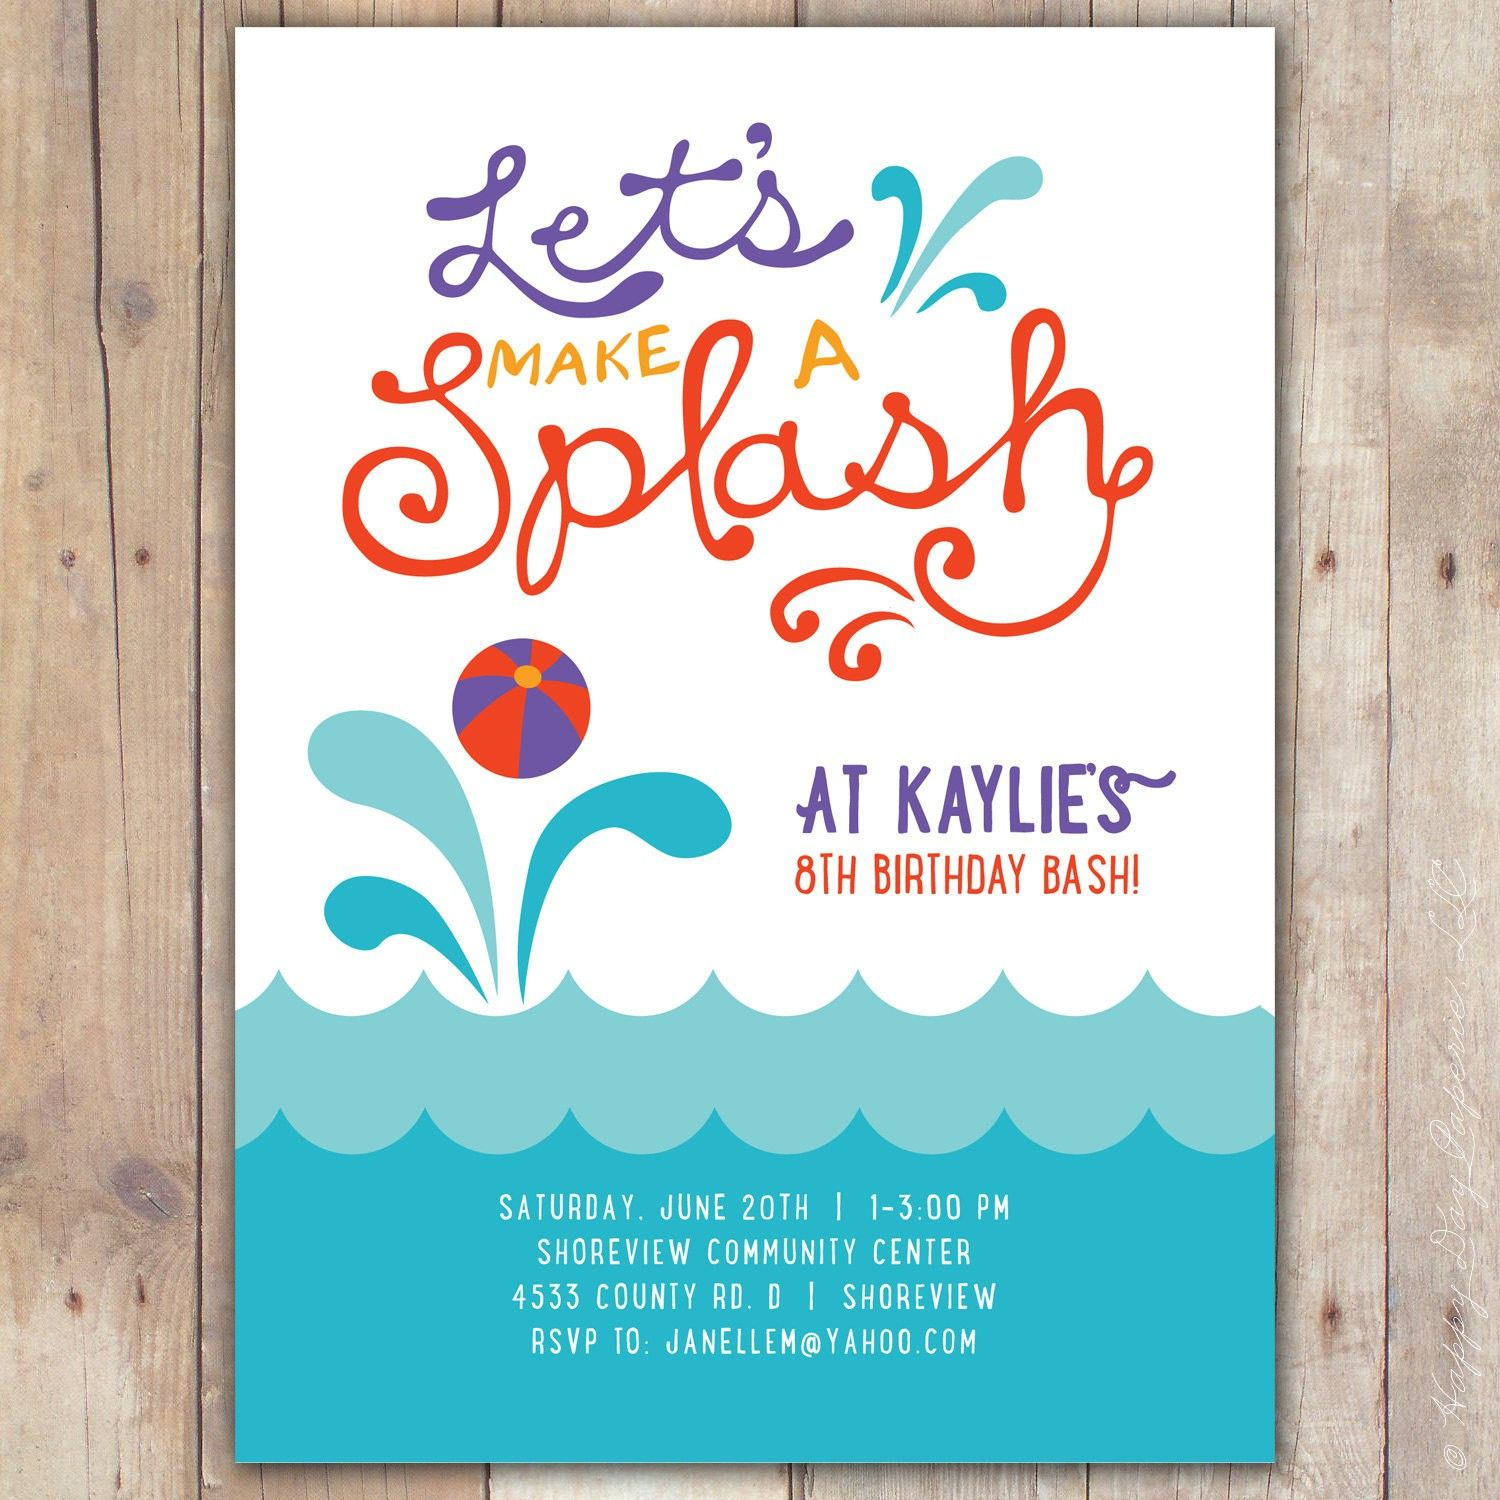 Pool Party Invitation Template Free Ideas More http://www ...